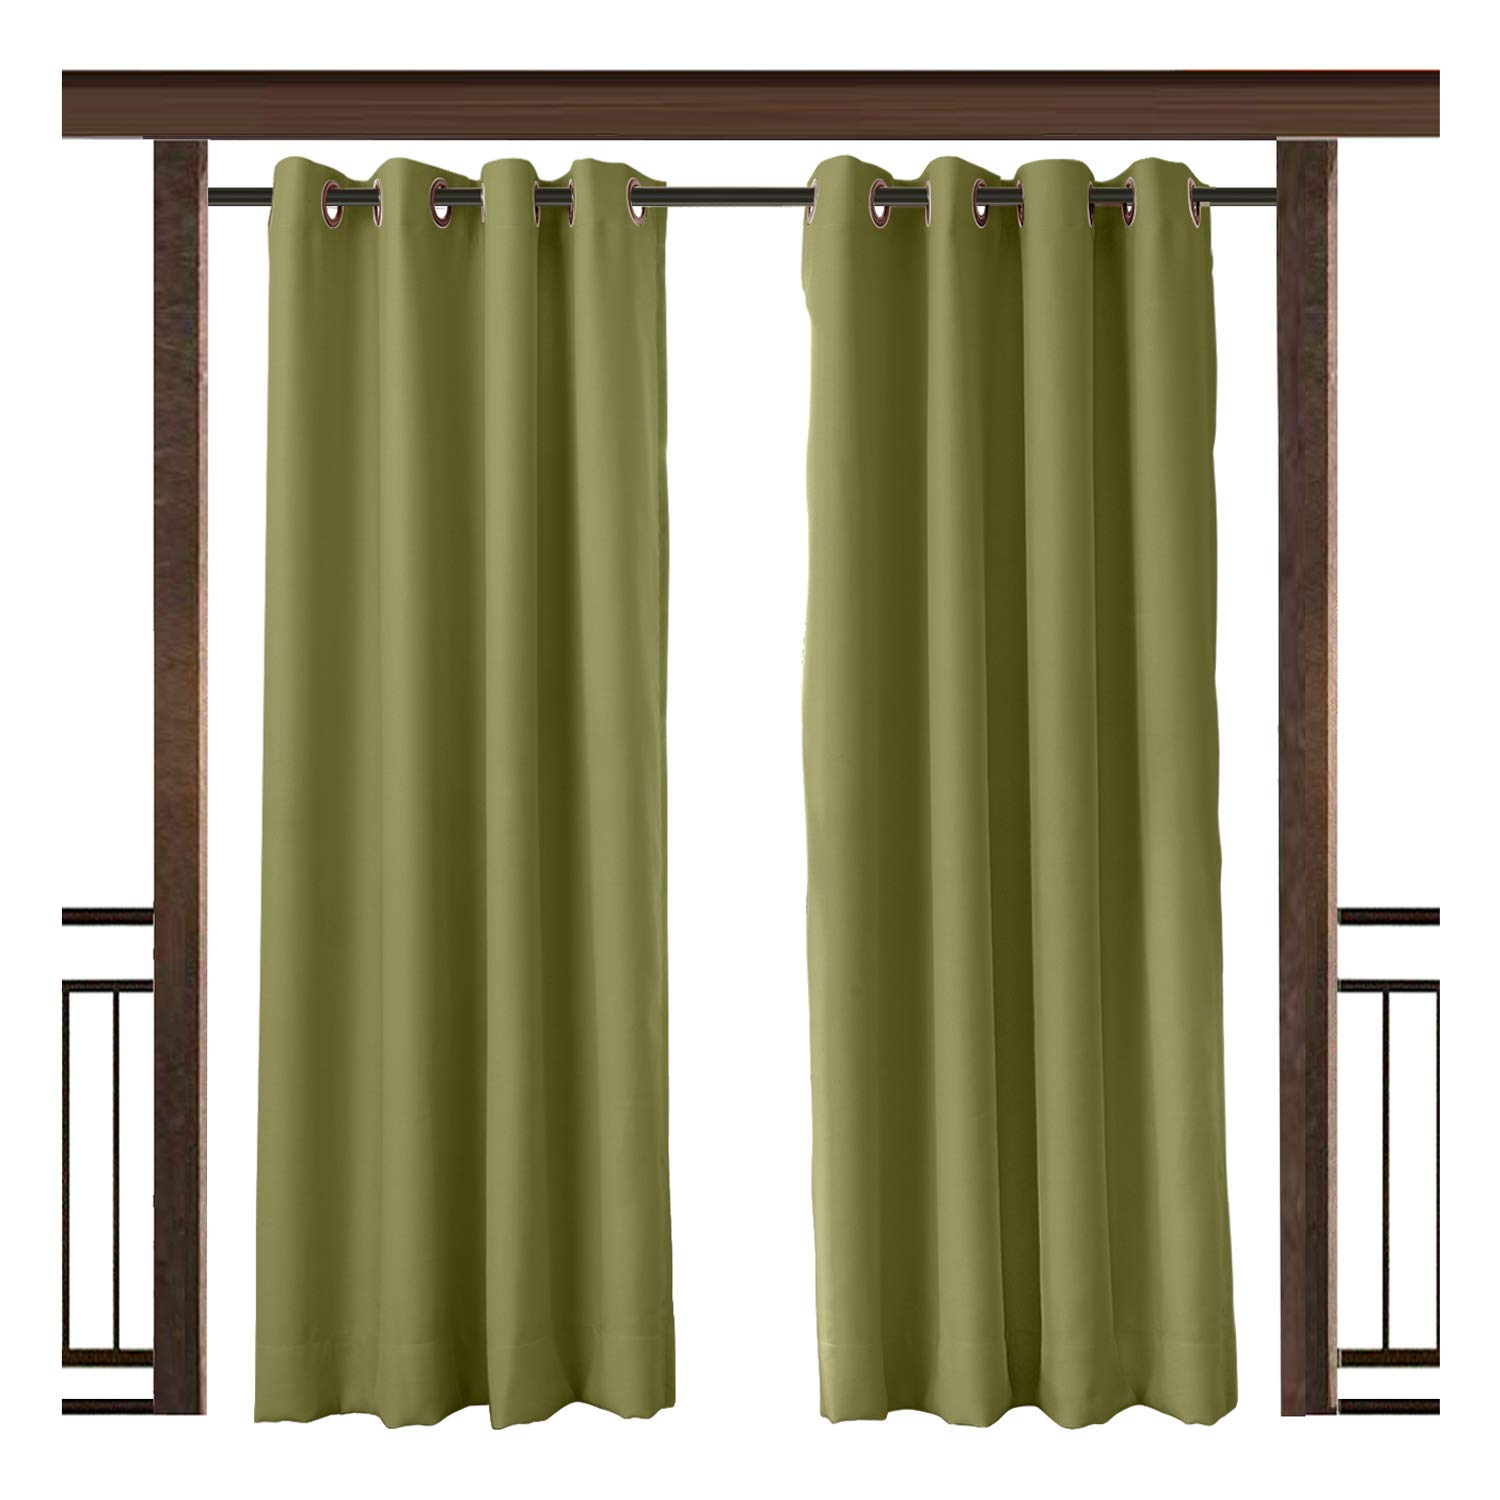 TWOPAGES Outdoor Curtain Waterproof Grommet Drape Green 100 W x 108 L Inch Front Porch Pergola Cabana Covered Patio Gazebo Dock Beach Home (1 panel)